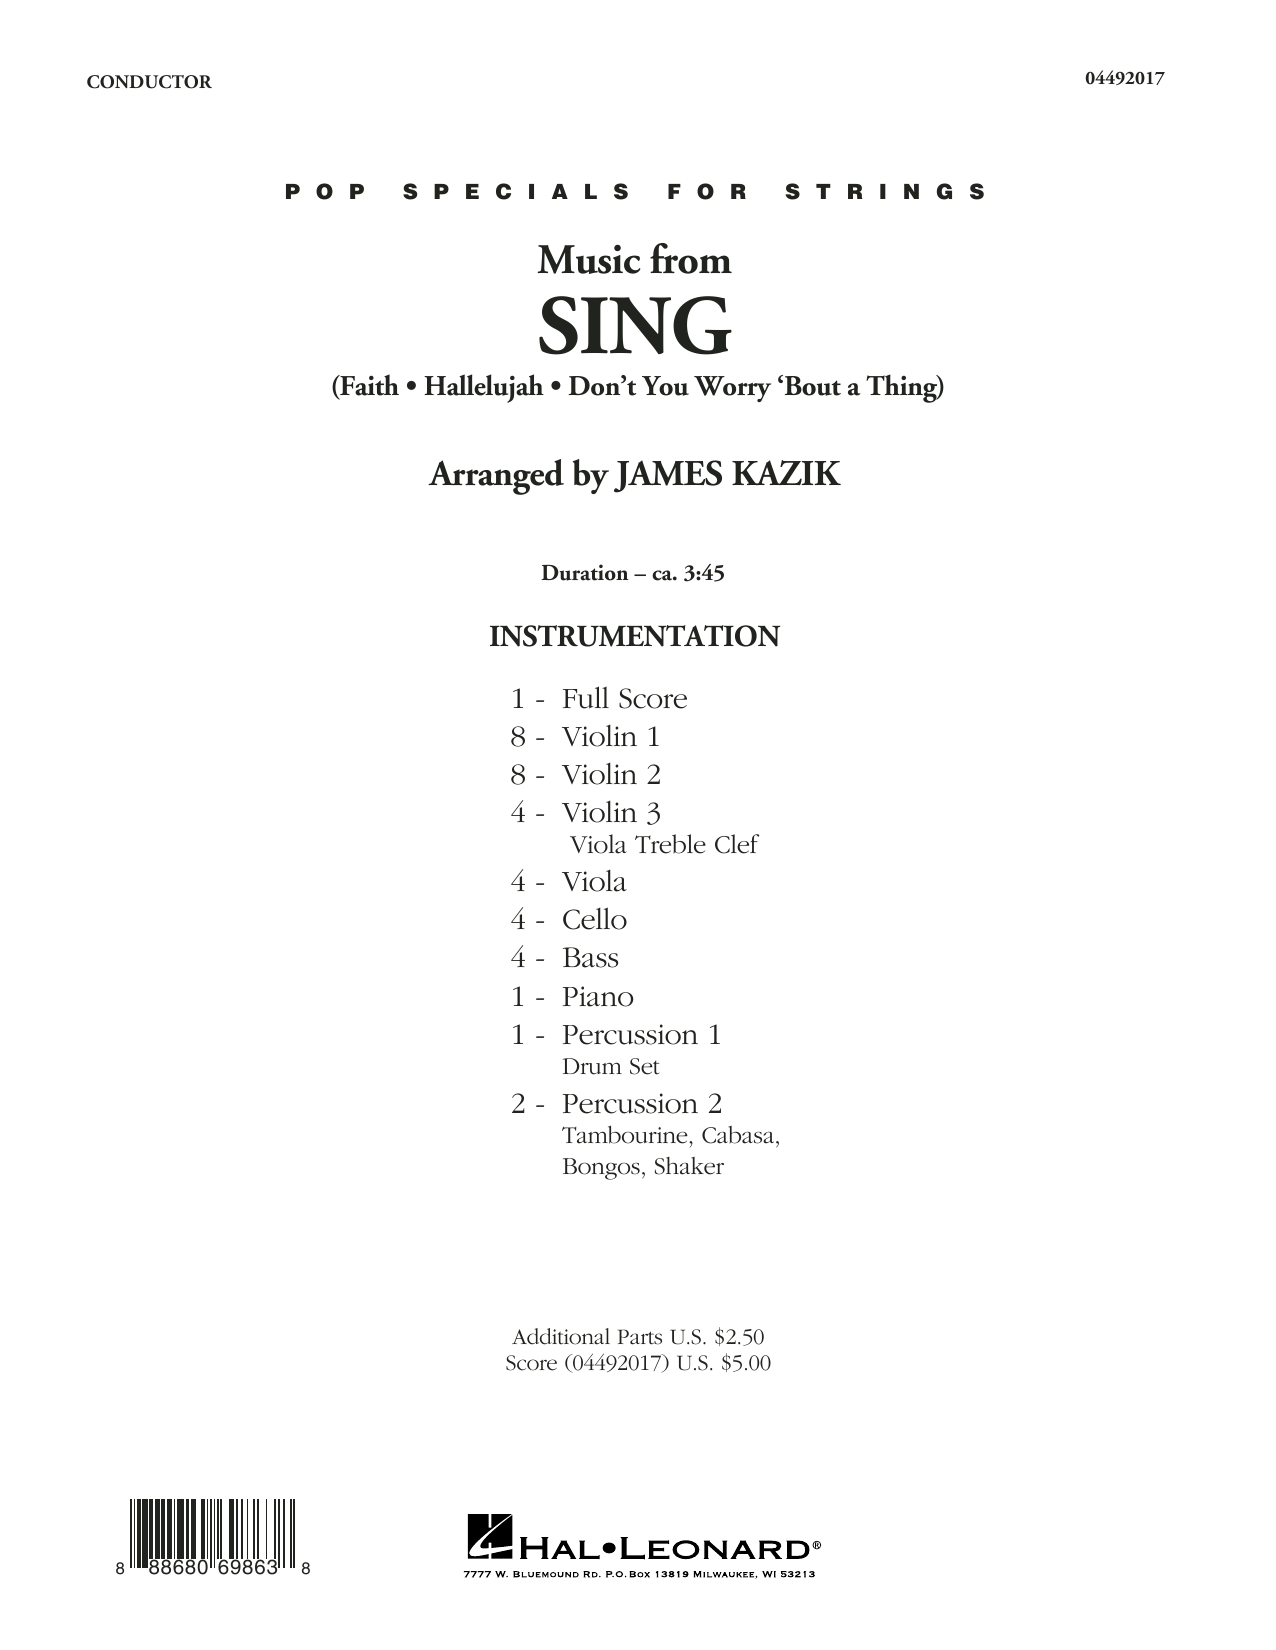 James Kazik Music from Sing - Conductor Score (Full Score) sheet music notes and chords. Download Printable PDF.